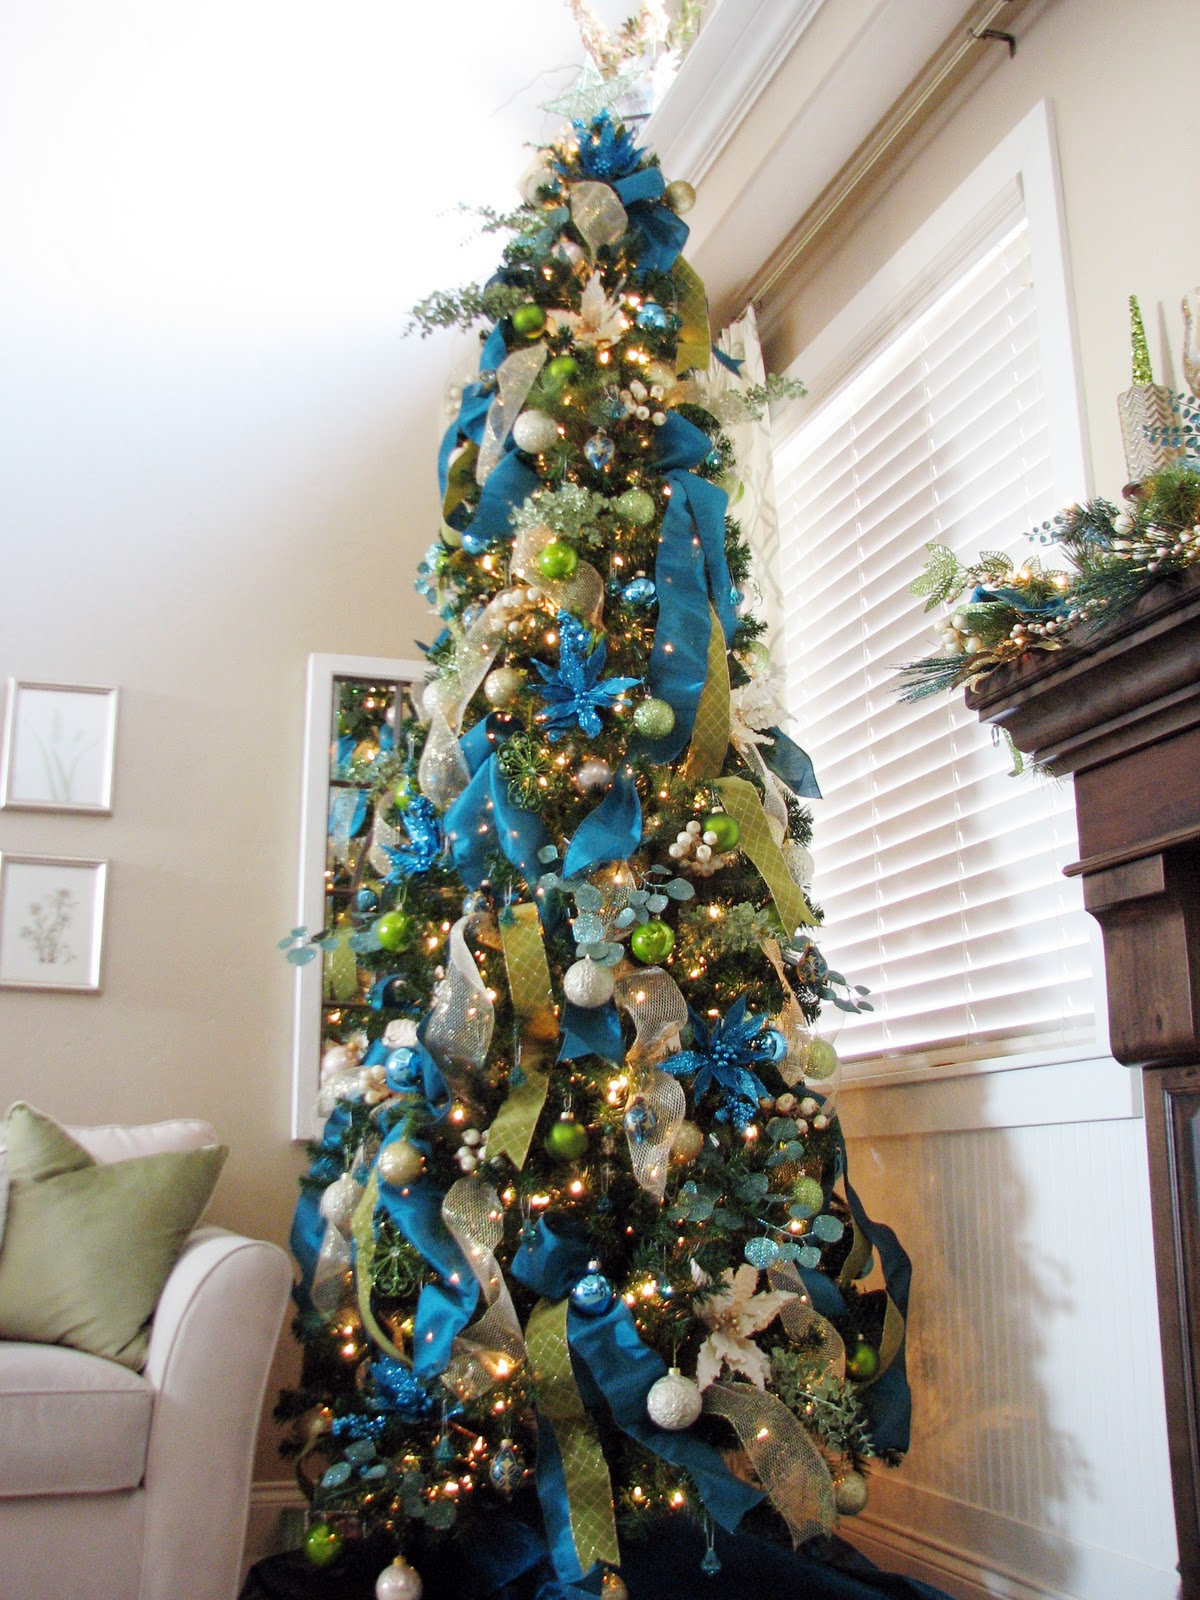 Sita Montgomery Interiors: More Christmas Decor...The Tree